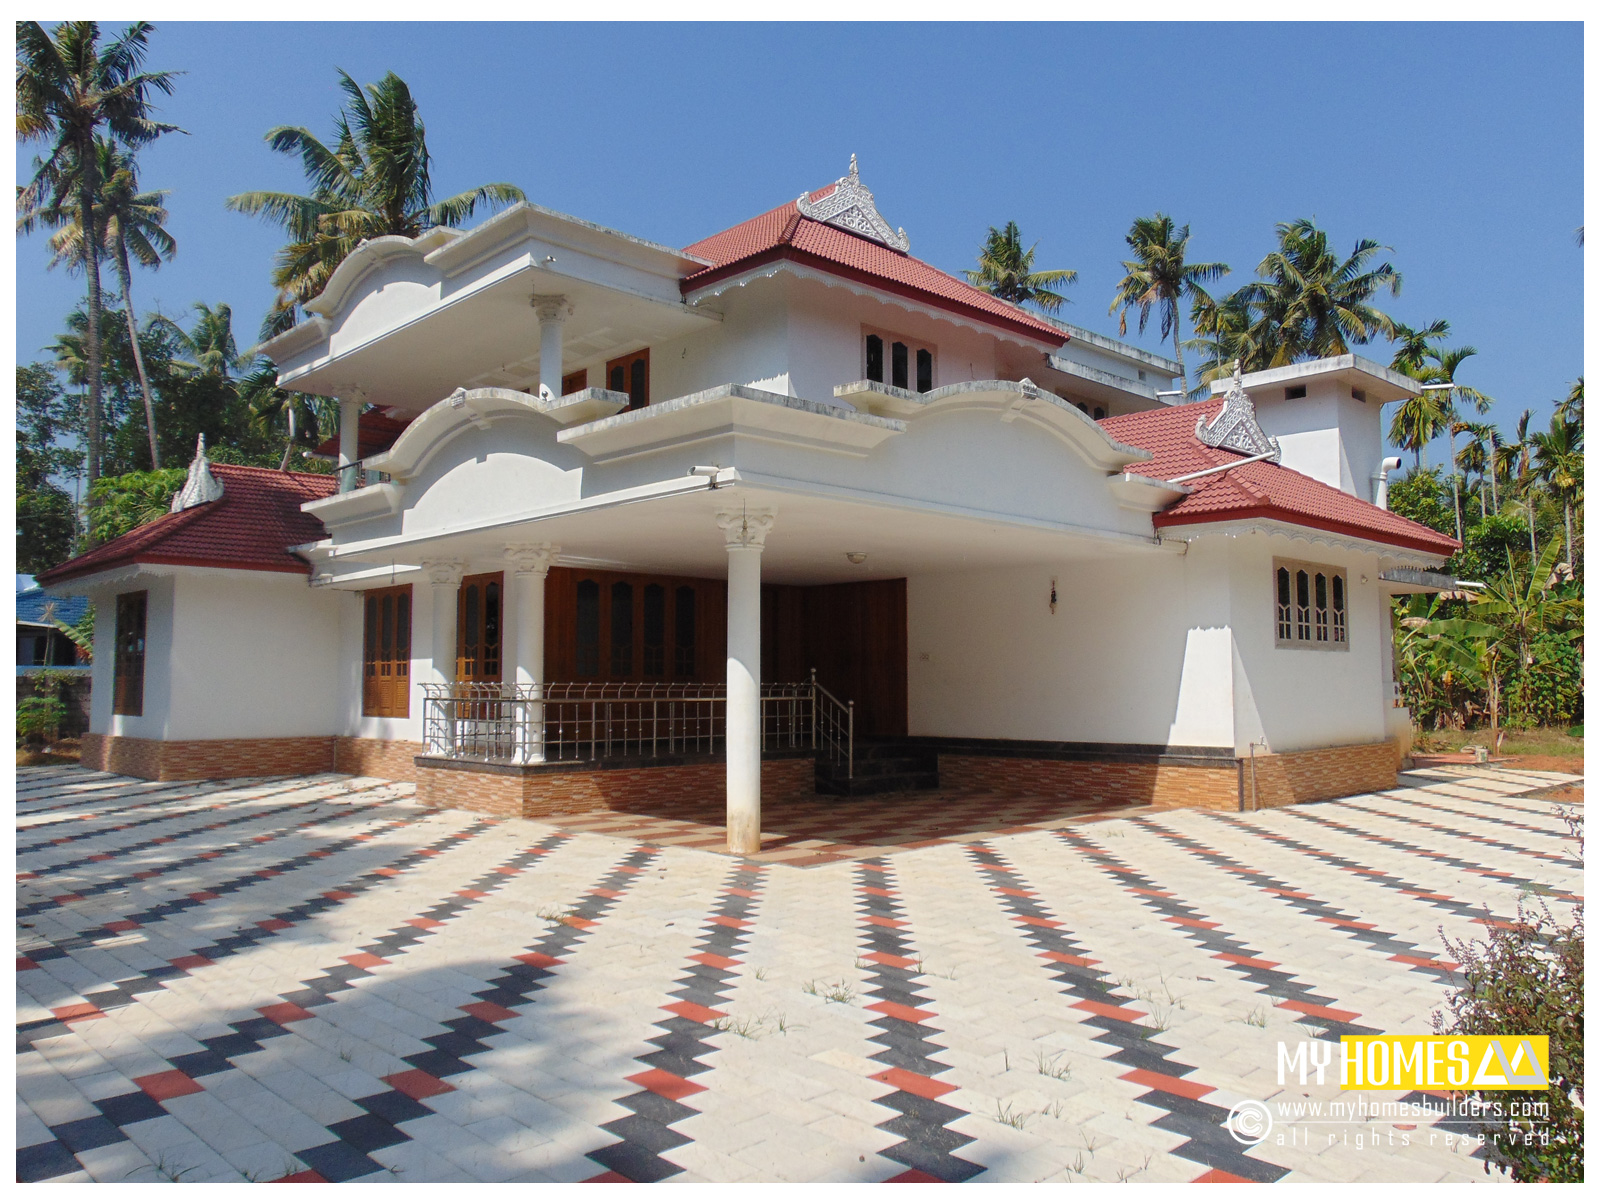 Traditional Kerala Homes, kerala traditional homes designs, modern traditional homes, kerala traditional house designs